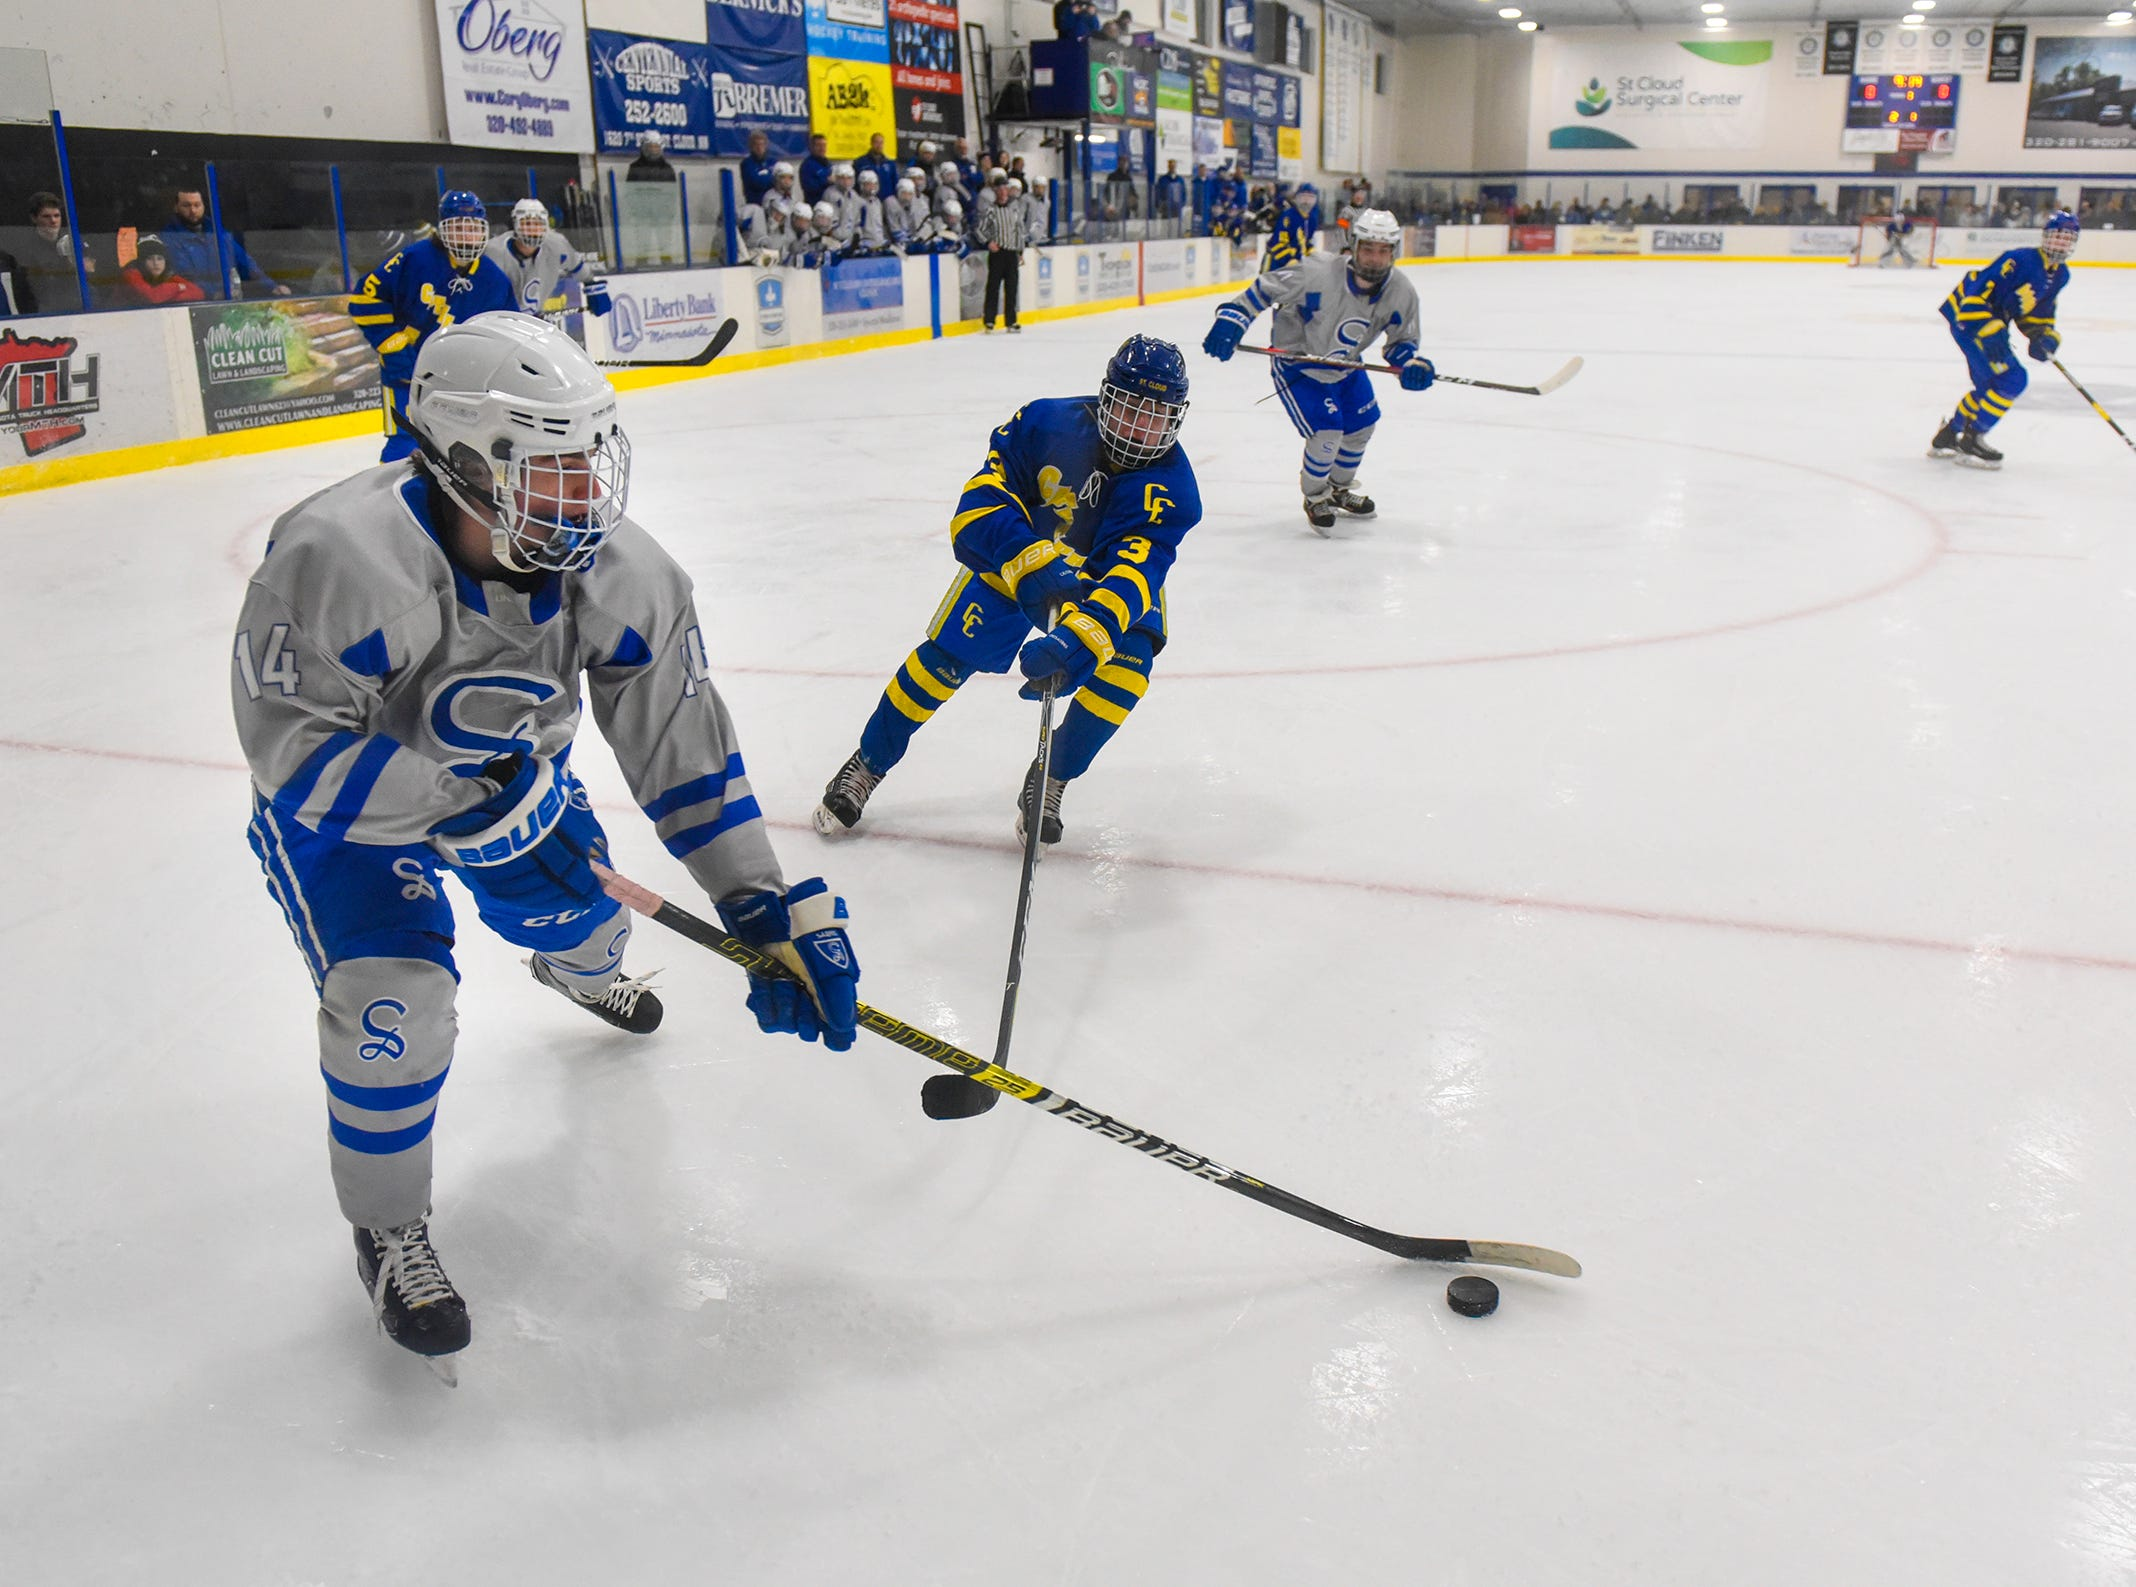 Sartell's Austin Adelman controls the puck during the Thursday, Jan. 10, game against Cathedral at Bernicks Arena in Sartell.